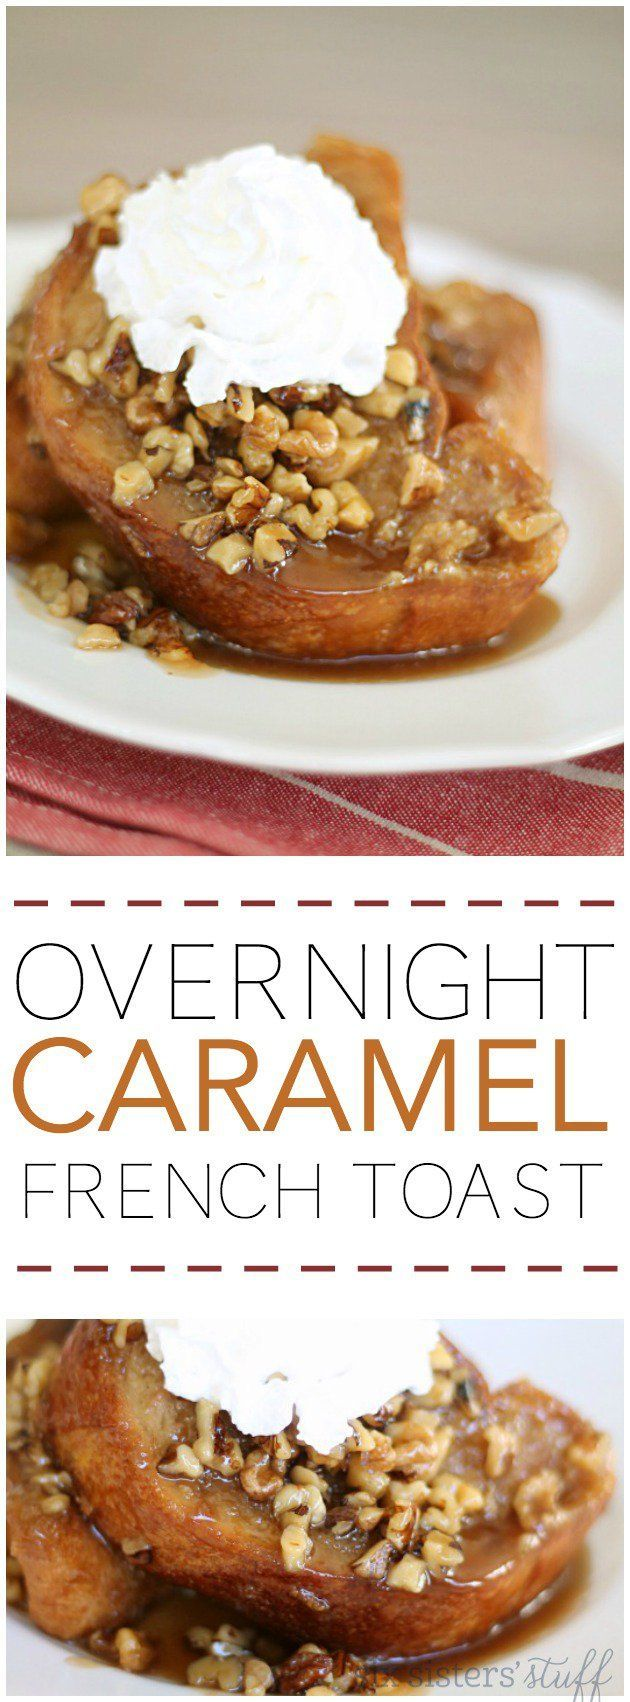 Overnight Baked Caramel French Toast from SixSistersStuff.com. This is a perfect breakfast for the holidays or to feed guests!